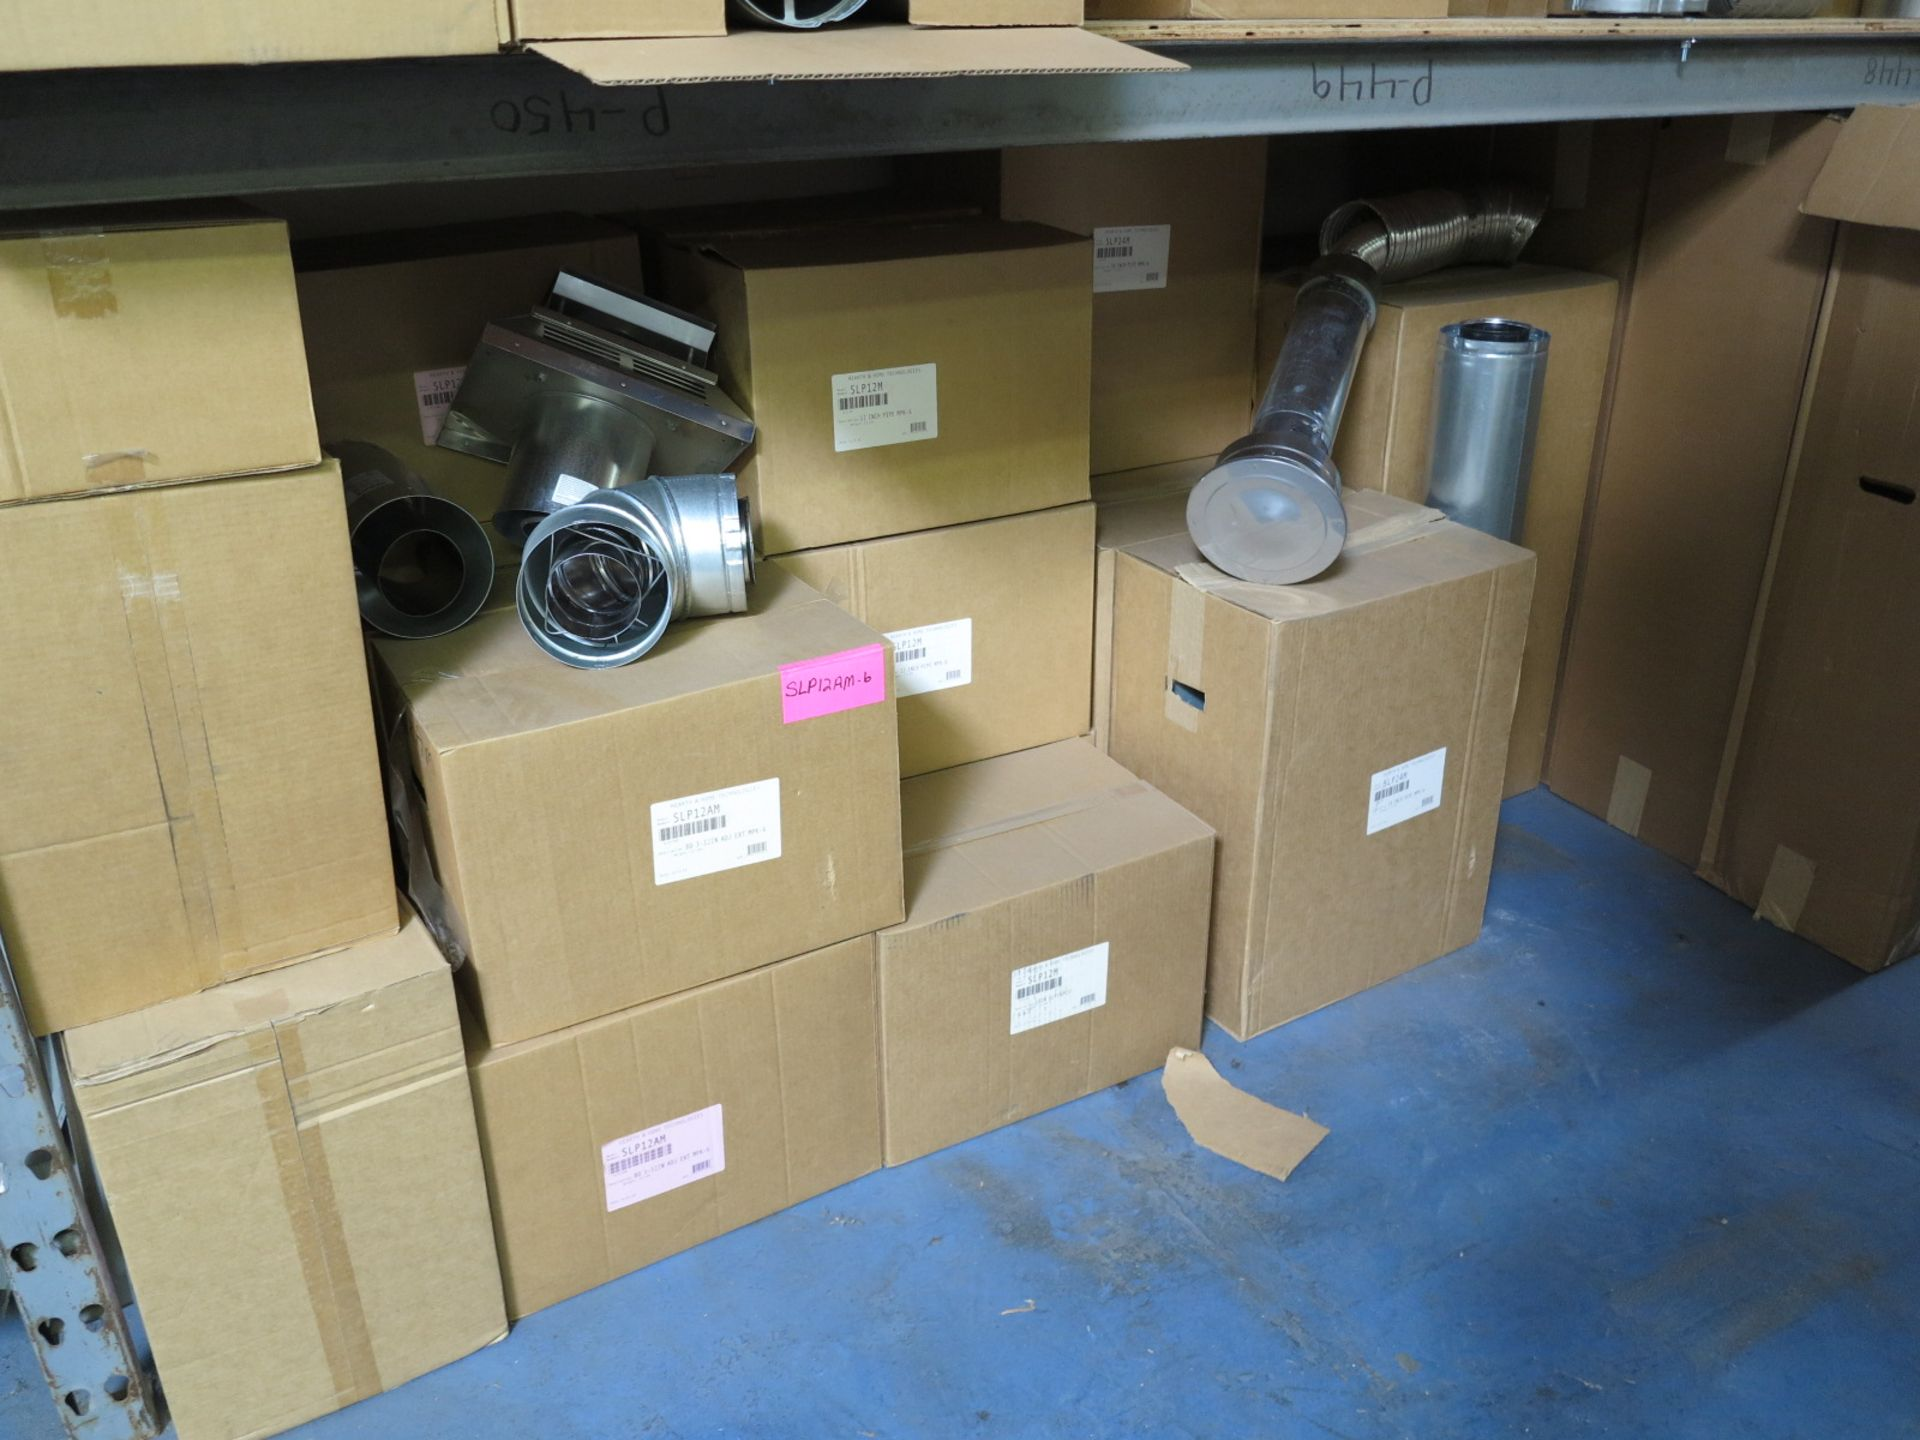 LOT - CONTENTS OF (1) SECTION OF PALLET RACKING, MISC STOVE PARTS - Image 2 of 4